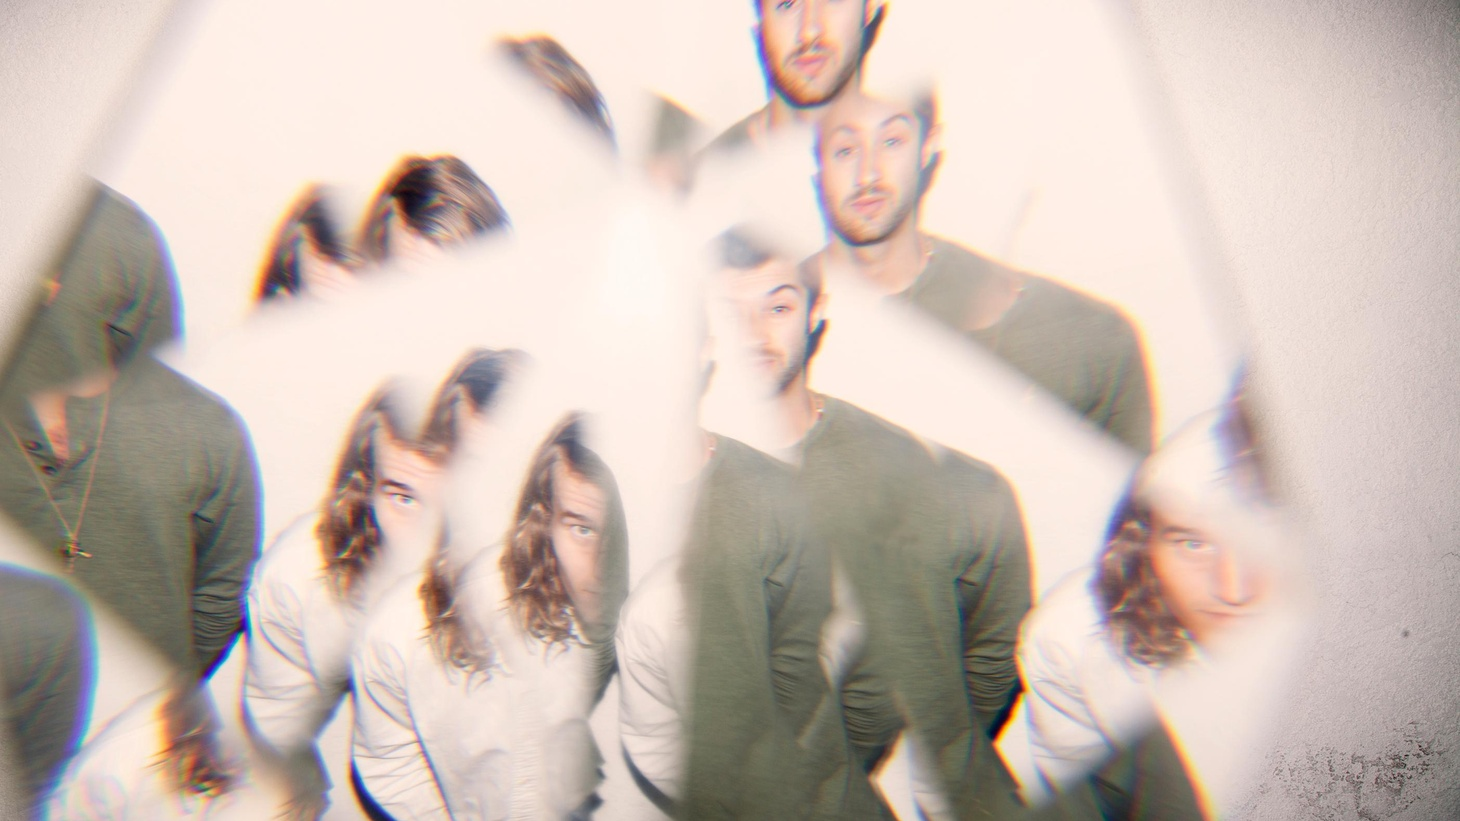 Trippy-pop outfit American Royalty are split between dark psychedelic rock and poignant electronica.